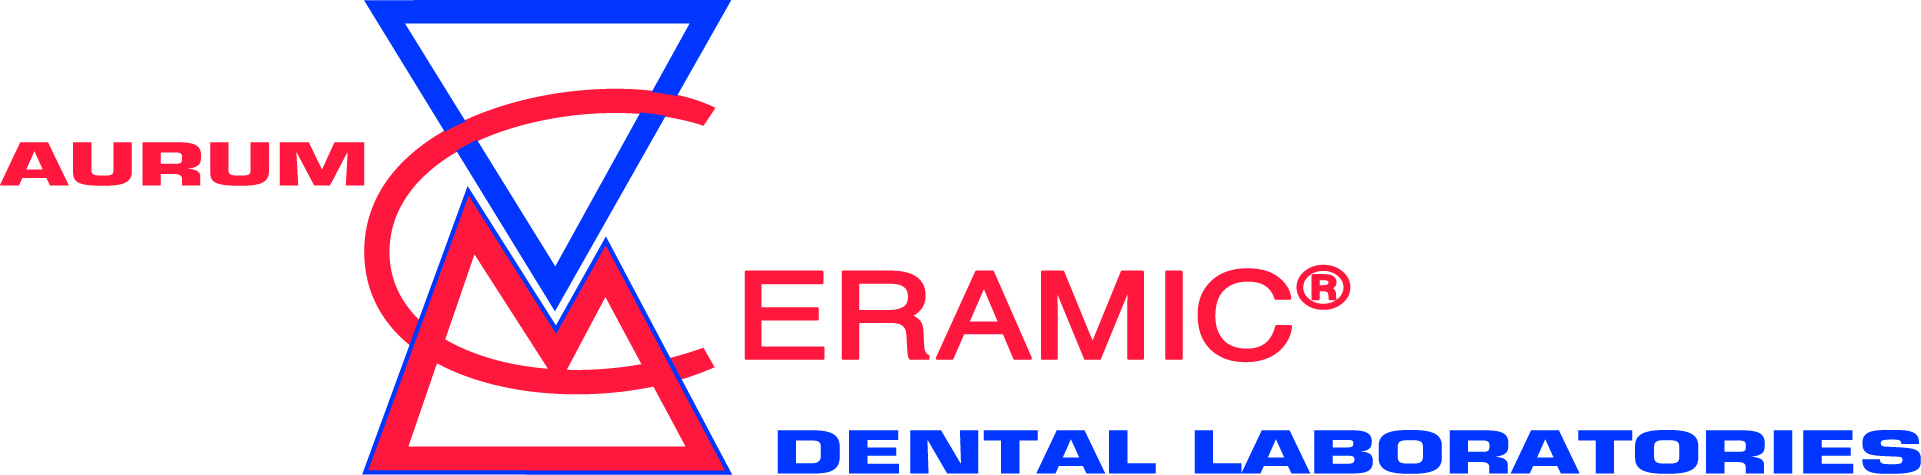 Aurum Ceramic Dental Laboratories